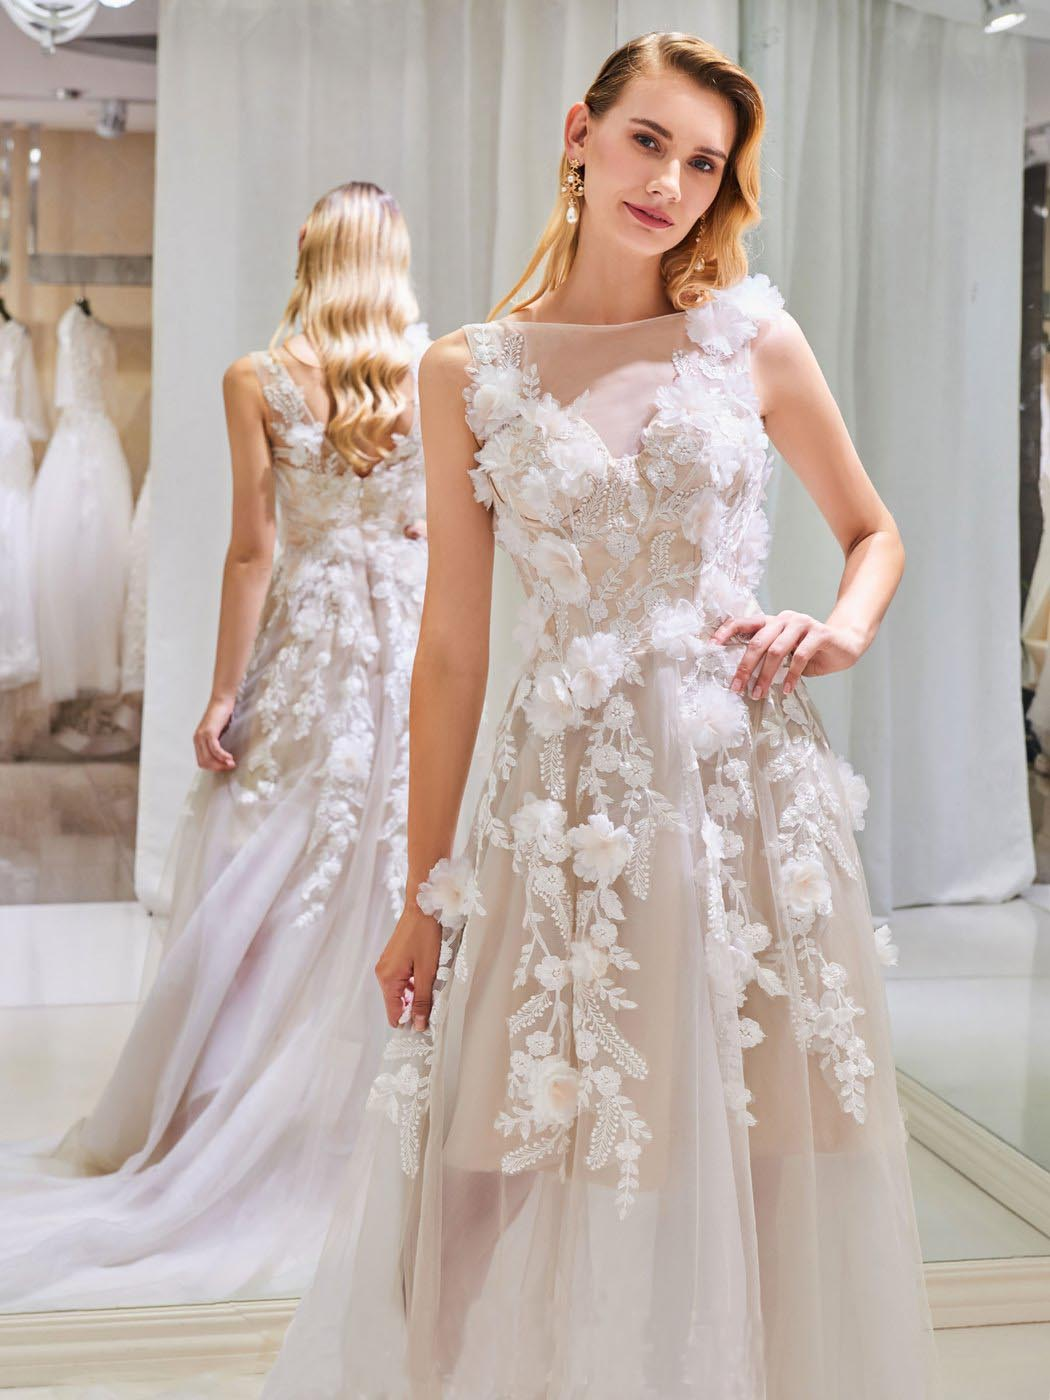 A Line High Low Prom Dresses,Tulle V Back Scoop Wedding Dresses,Lace Appliques Sleeveless Bridal Dresses,Prom Dresses DC174